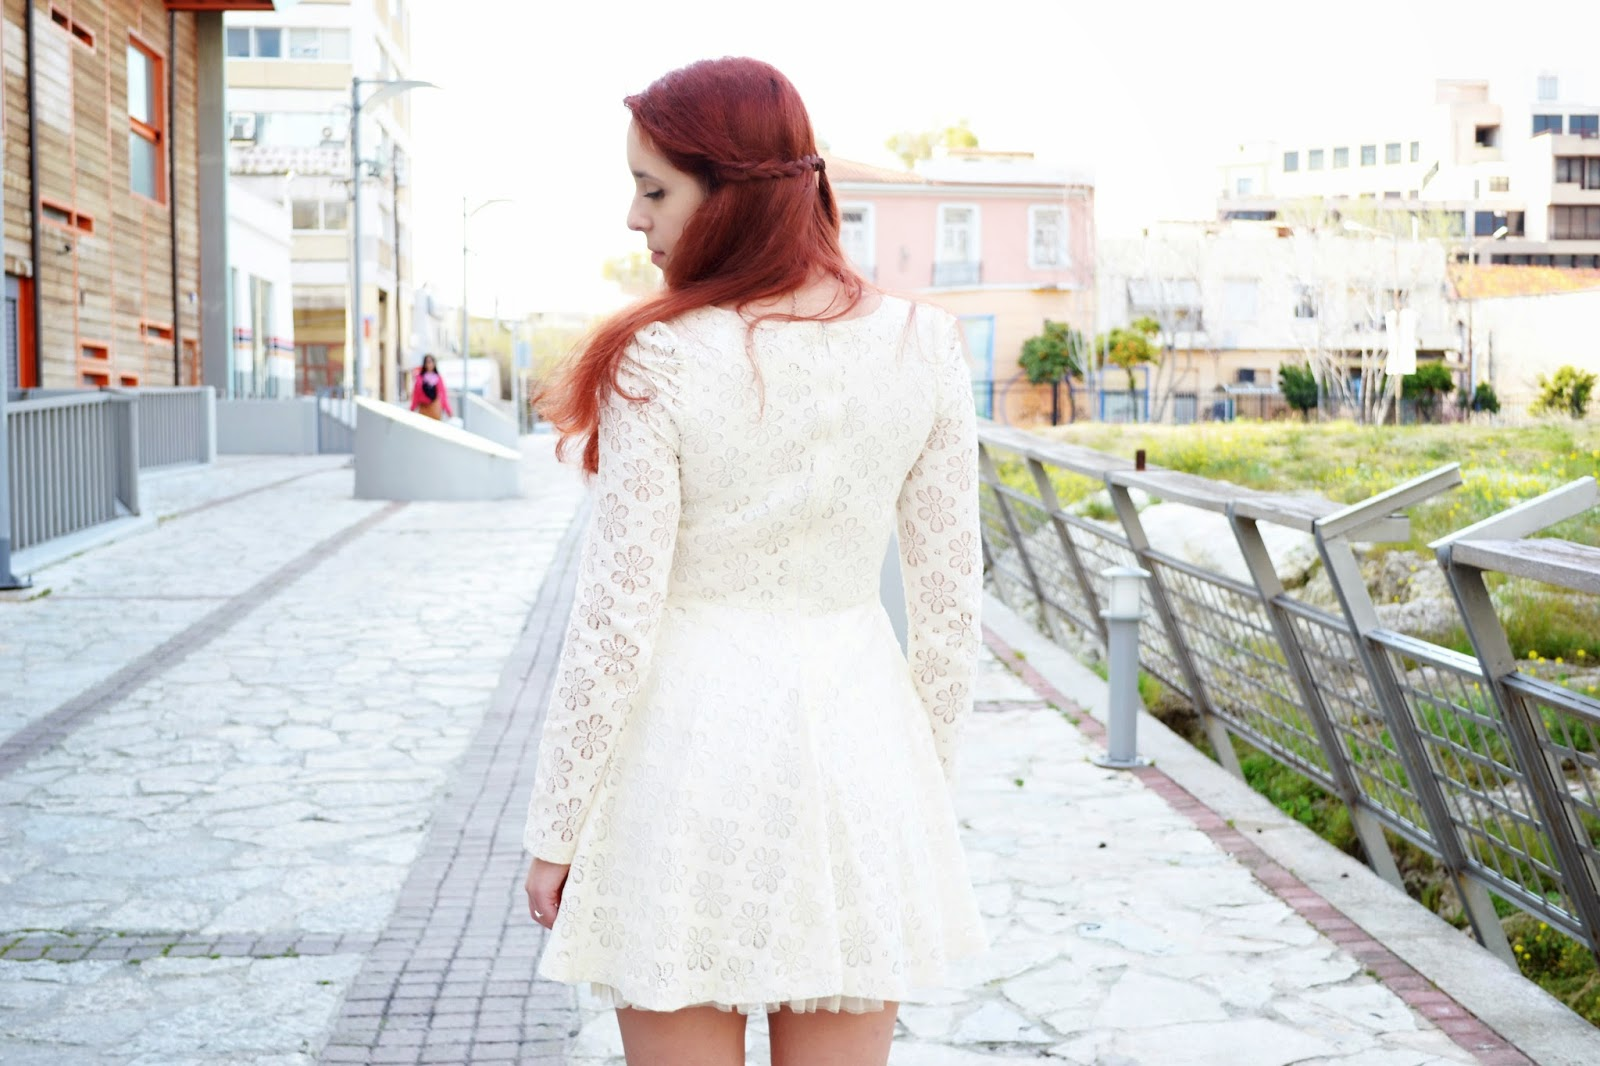 Anna ,Keni,redhead, spotlights on the redhead,fashion,model,blogger, oasap, dress, white, lace, rings and tings, pearl, necklace, heart, ring, spring, review,outfit,zara, shoes,